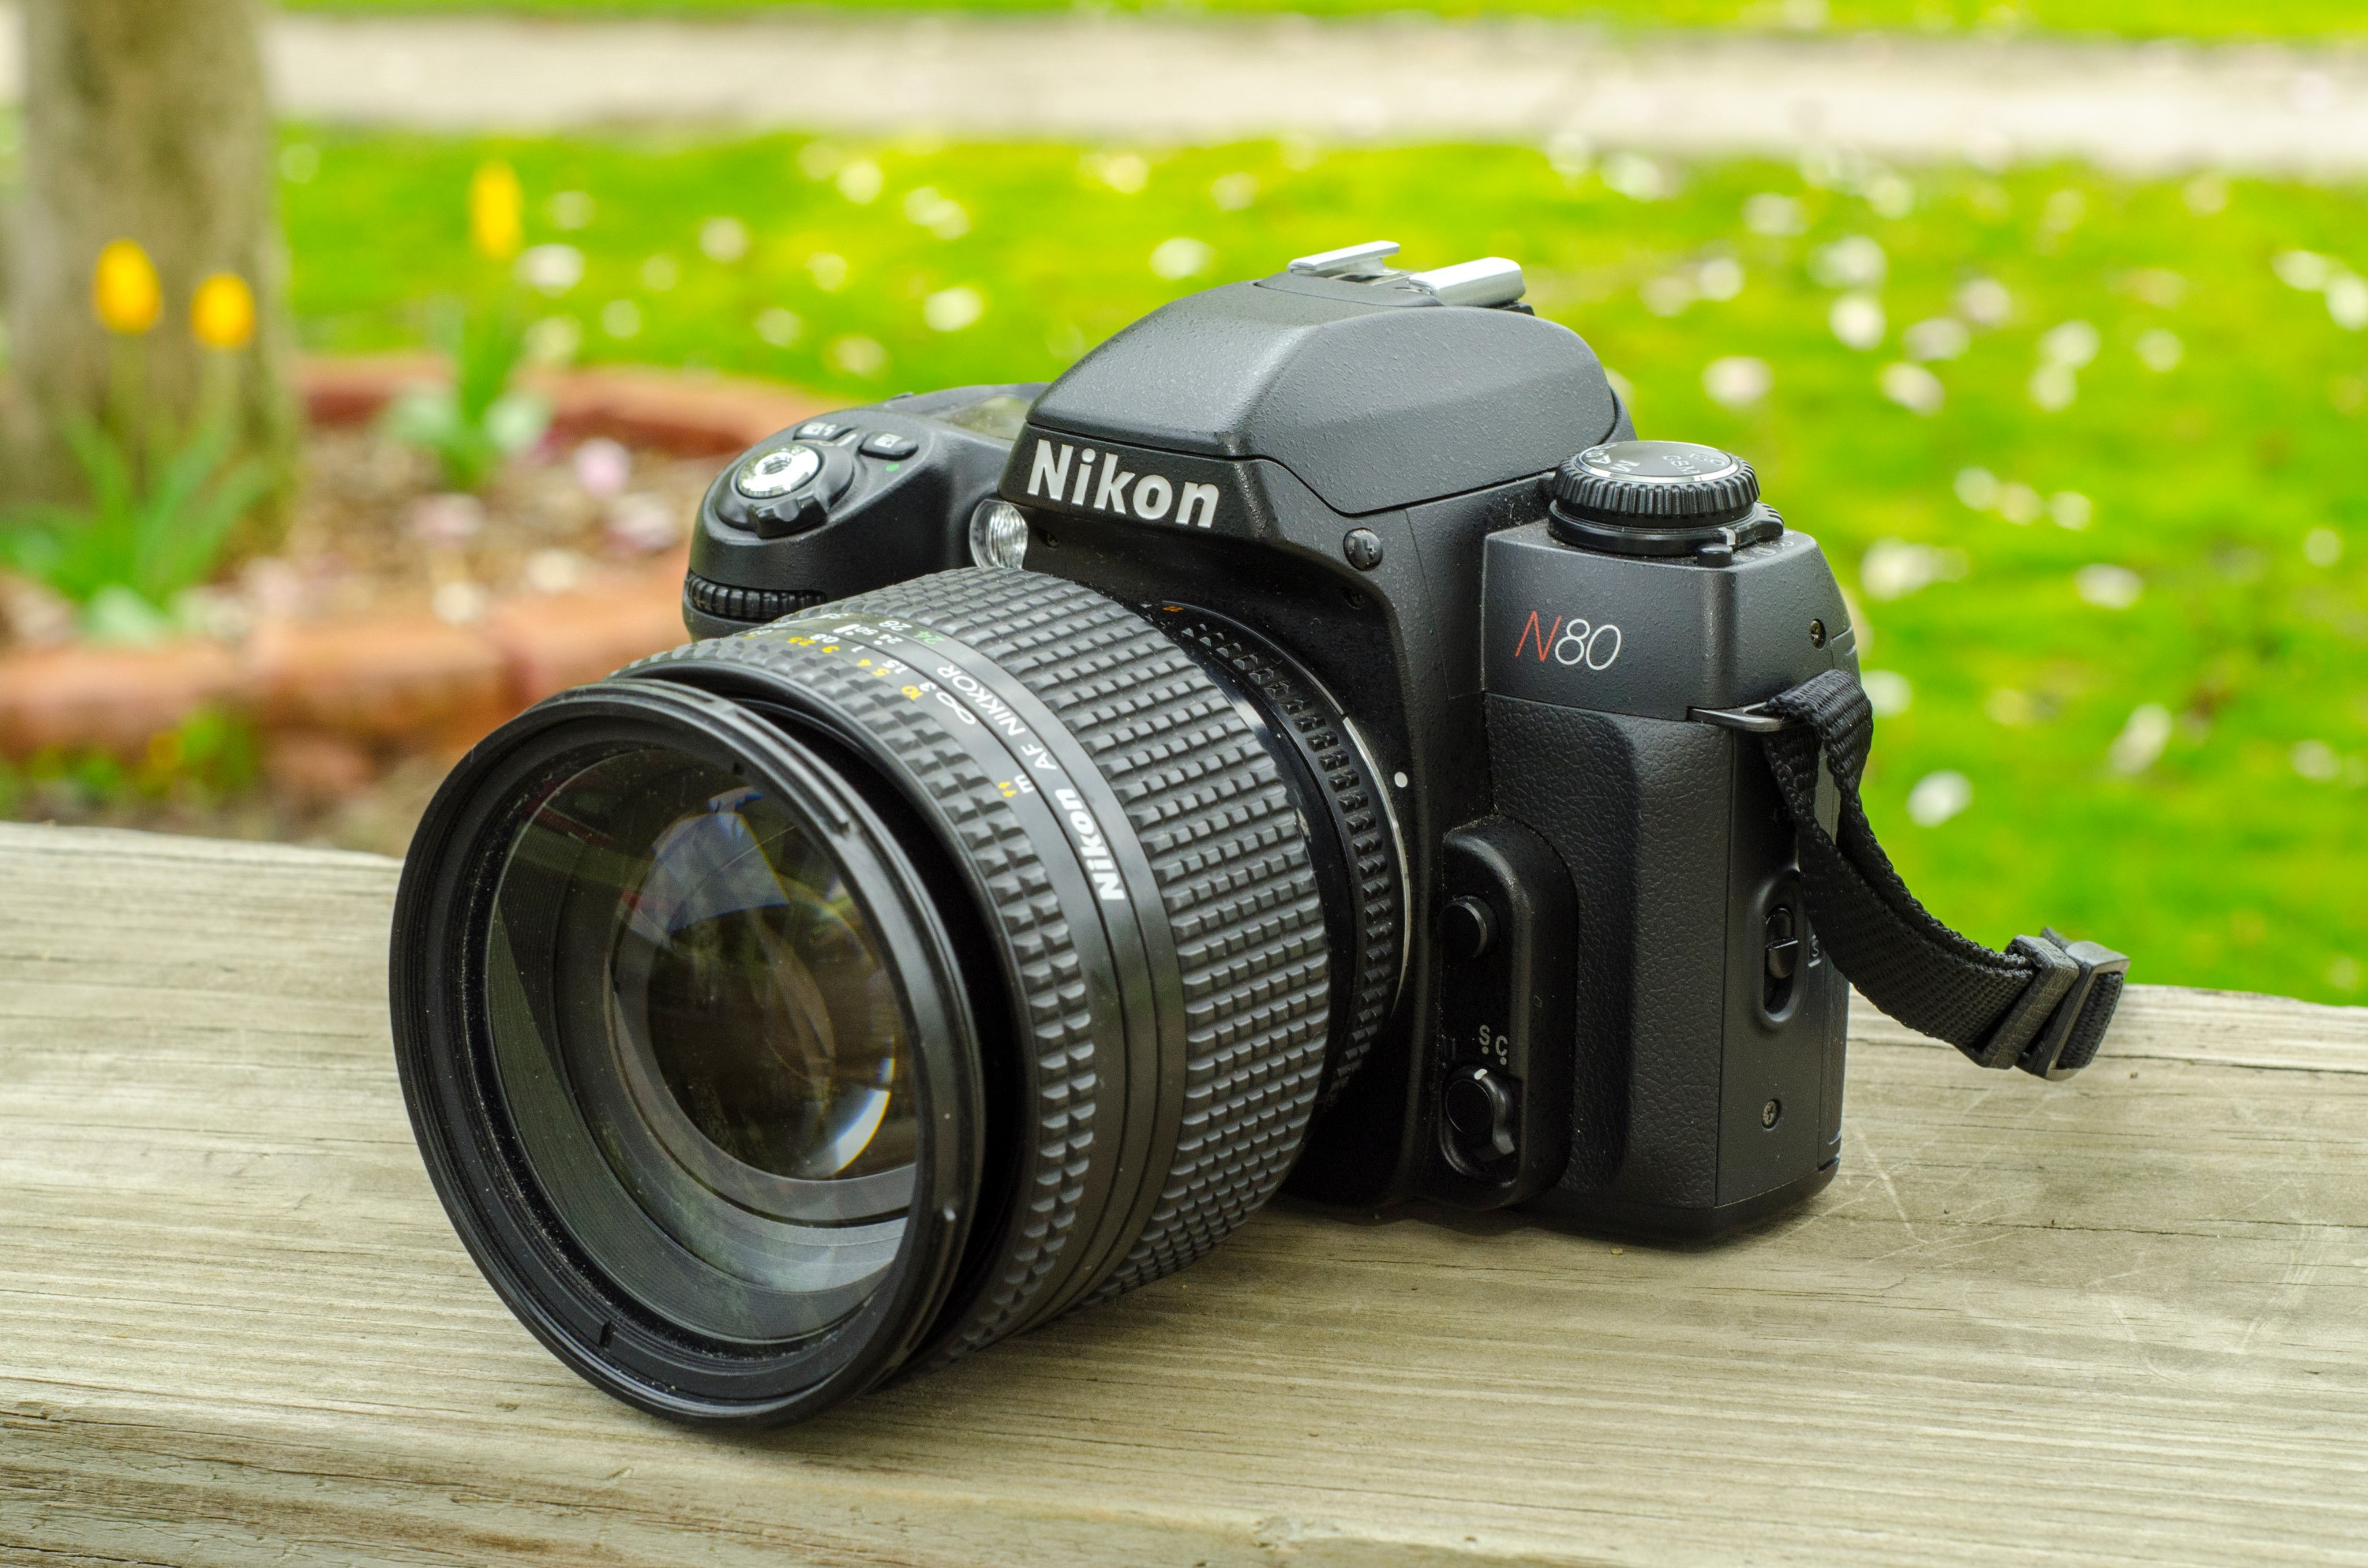 Nikon n80 (2000) mike eckman dot com.